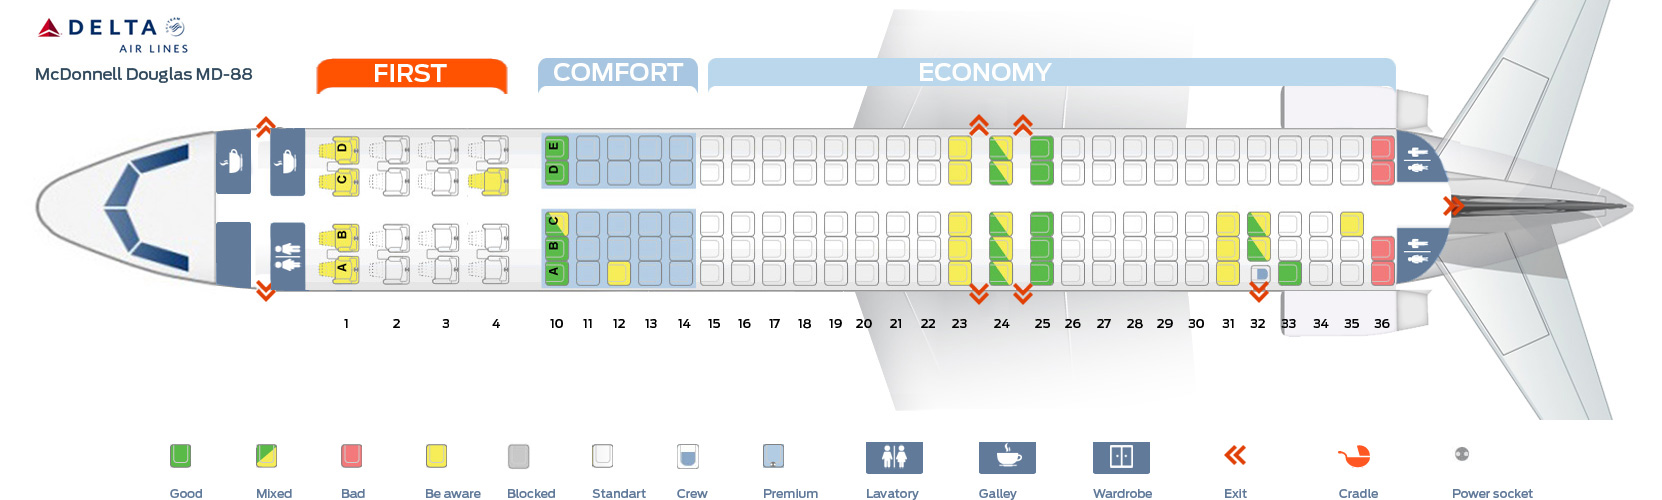 hight resolution of seat map of the mcdonnell douglas md 88